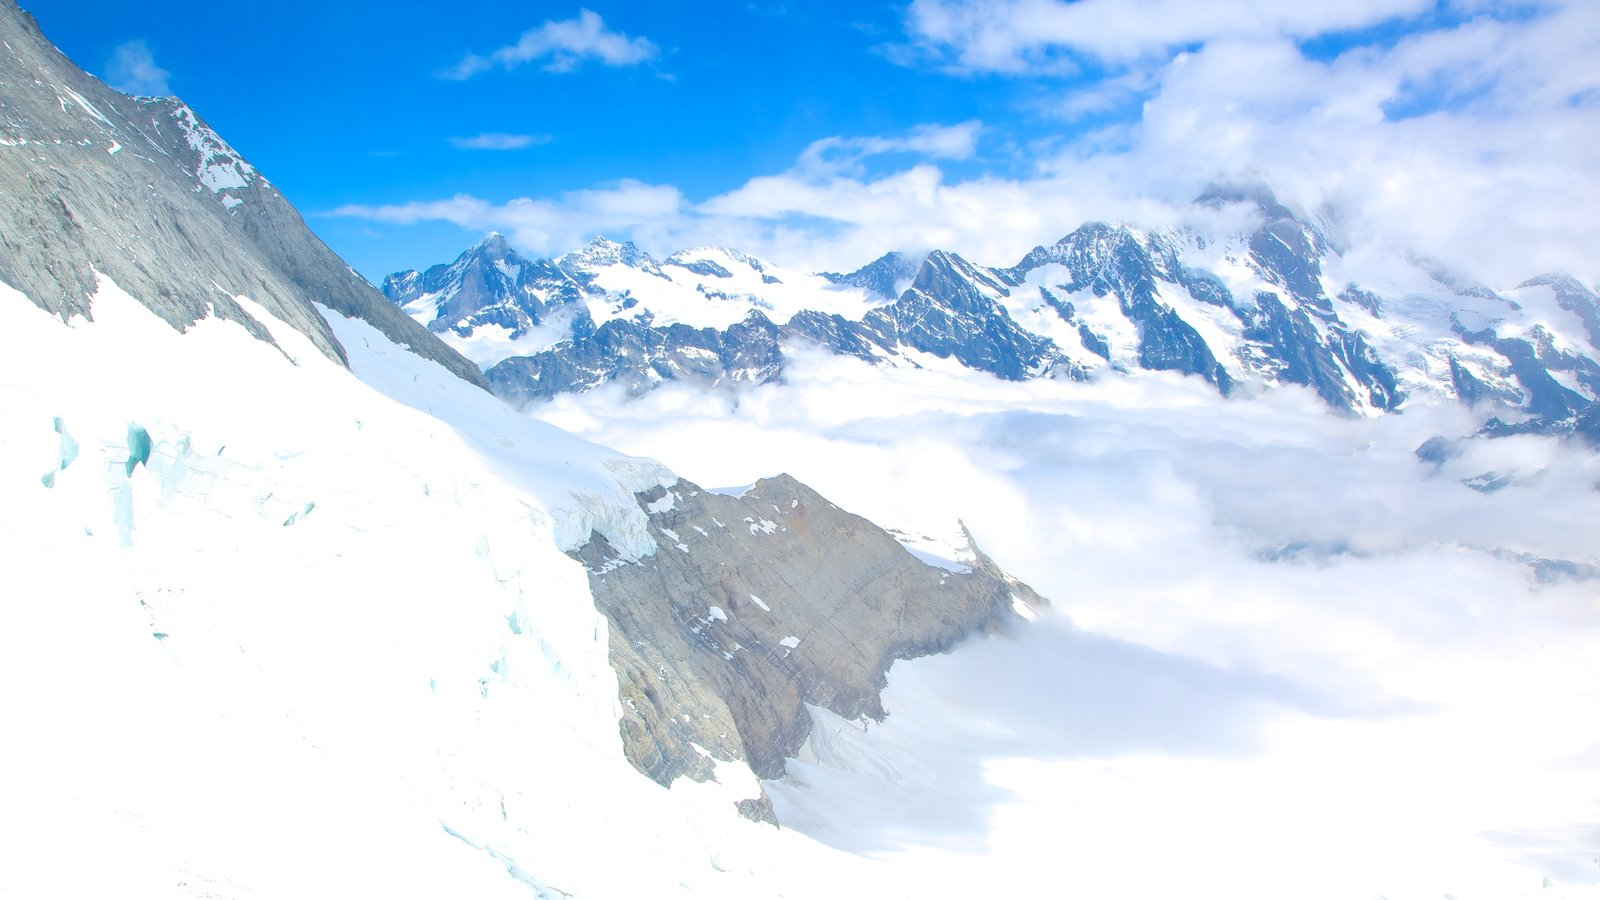 Jungfraujoch featuring snow, mist or fog and mountains